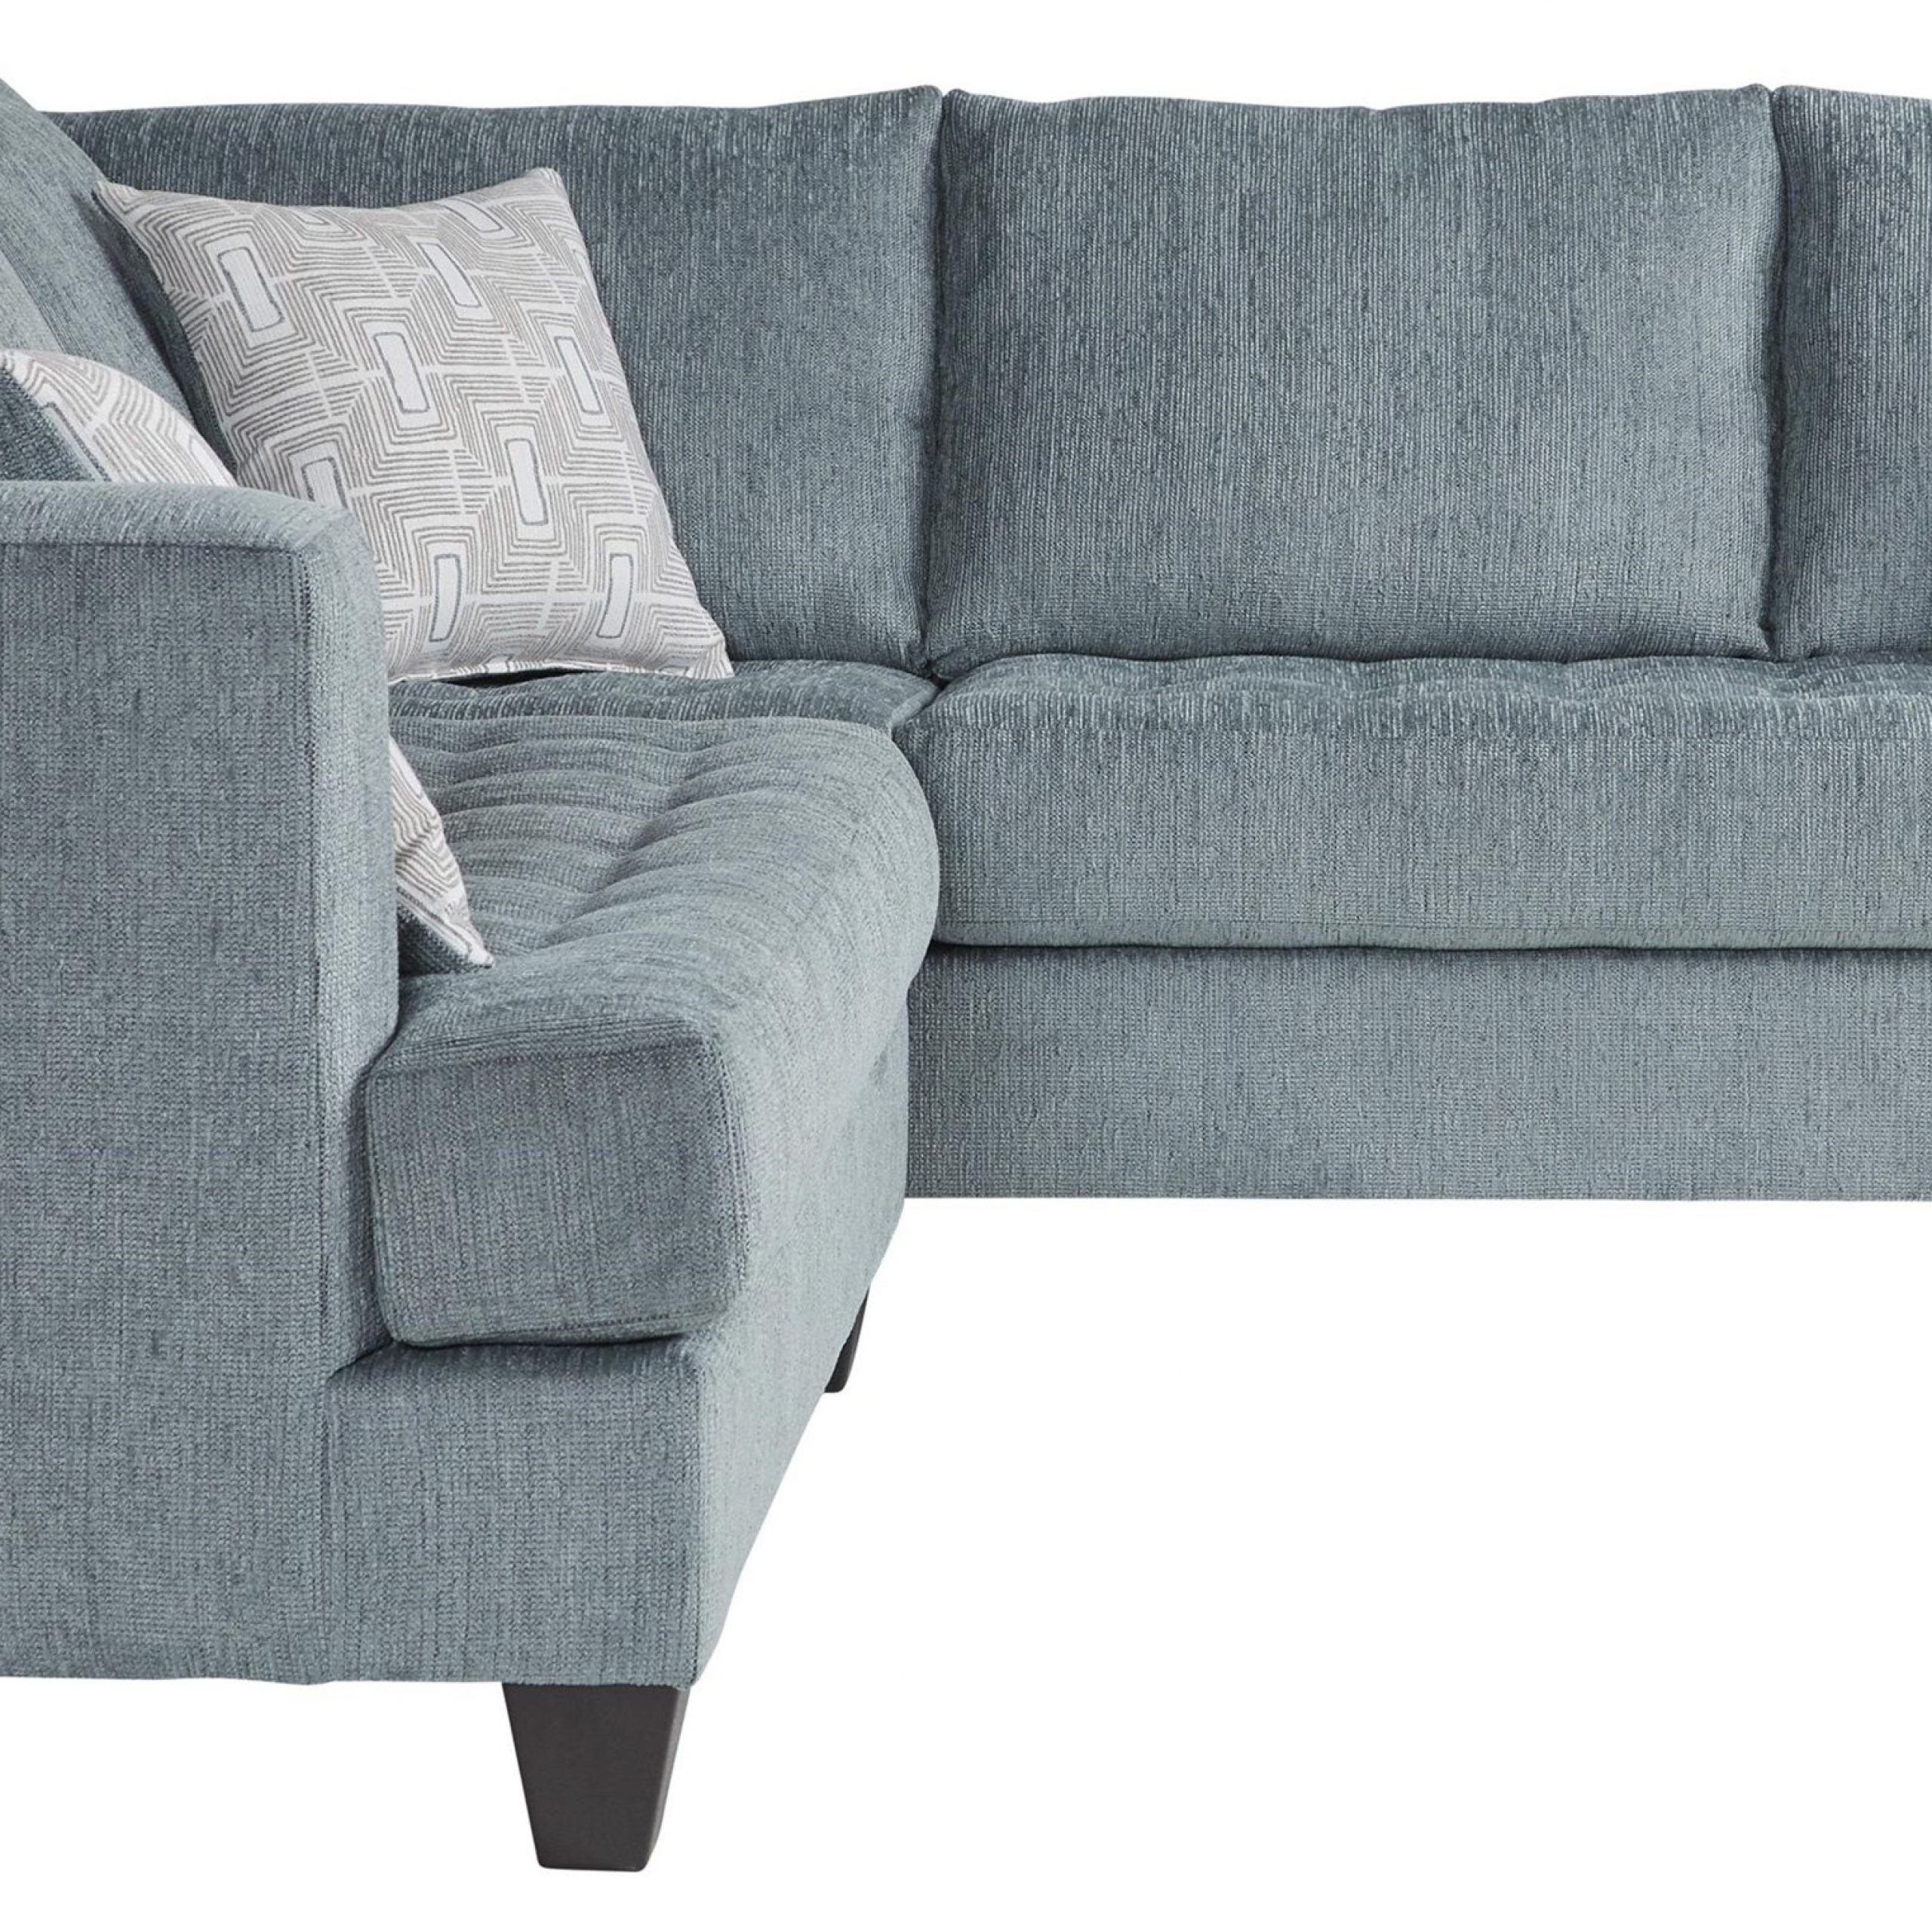 Harmon Roll Arm Sectional Sofas Within Trendy Serta Upholstery Sectionals: Ashas Spiritual Essence (View 6 of 20)